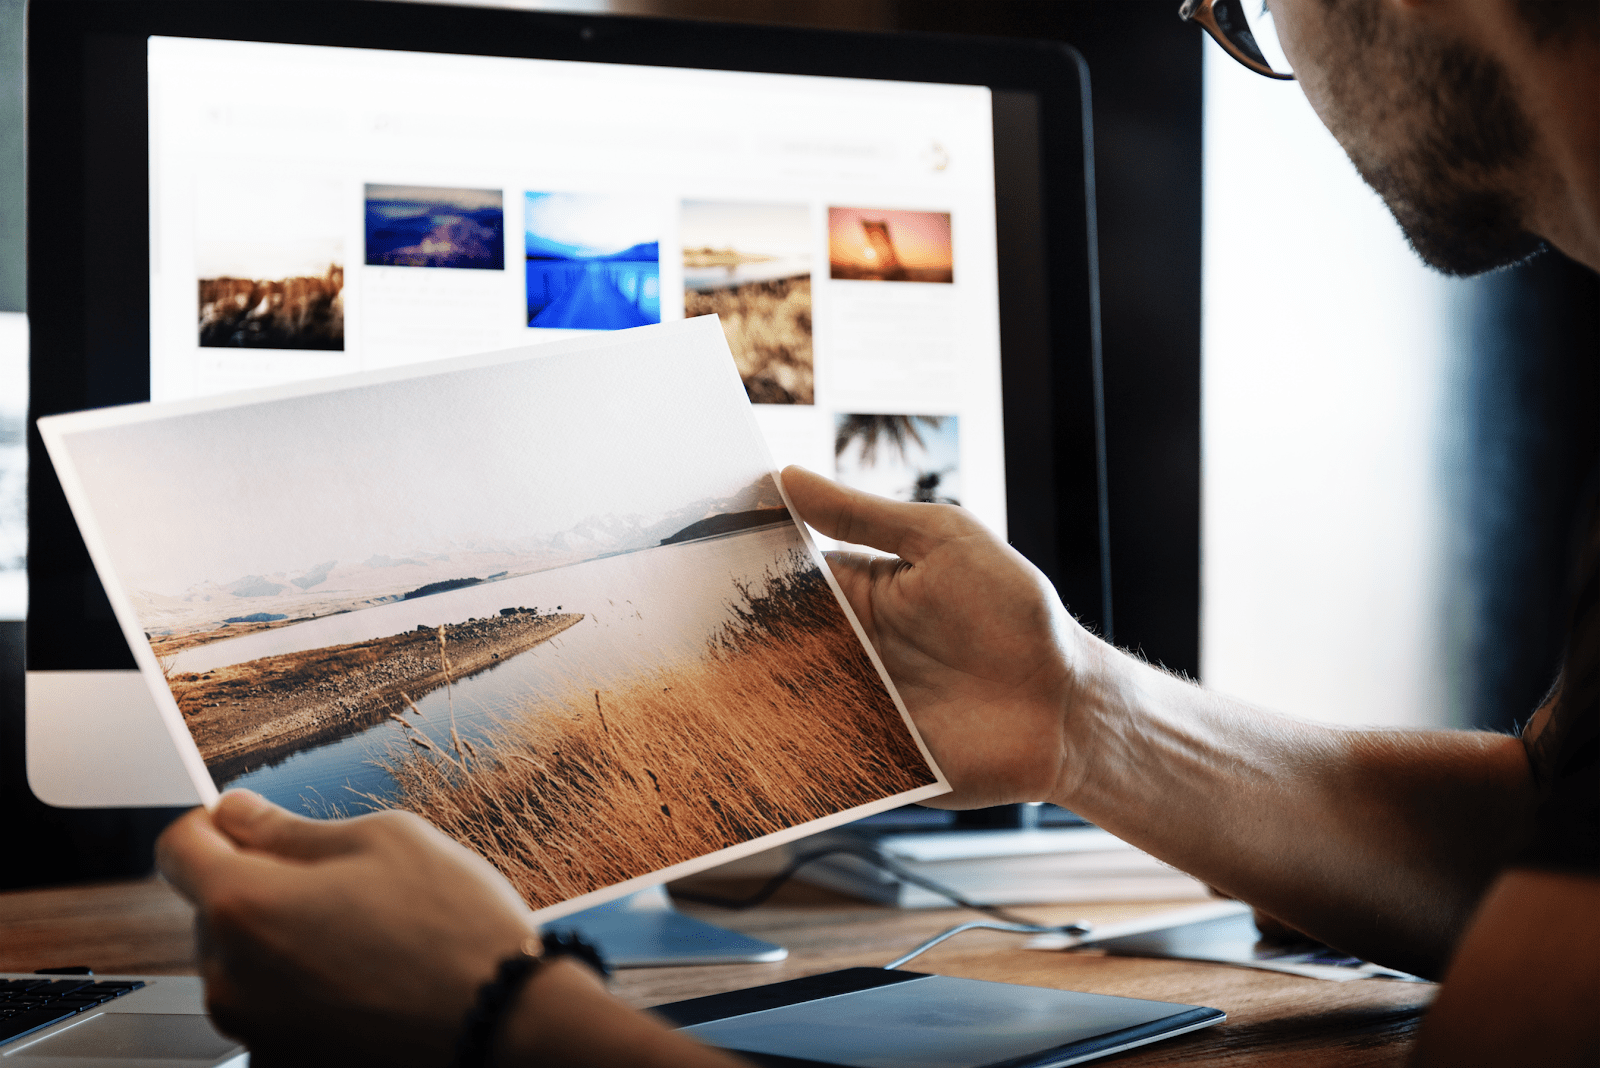 Man holding up a landscape photo at his work desk by rawpixel